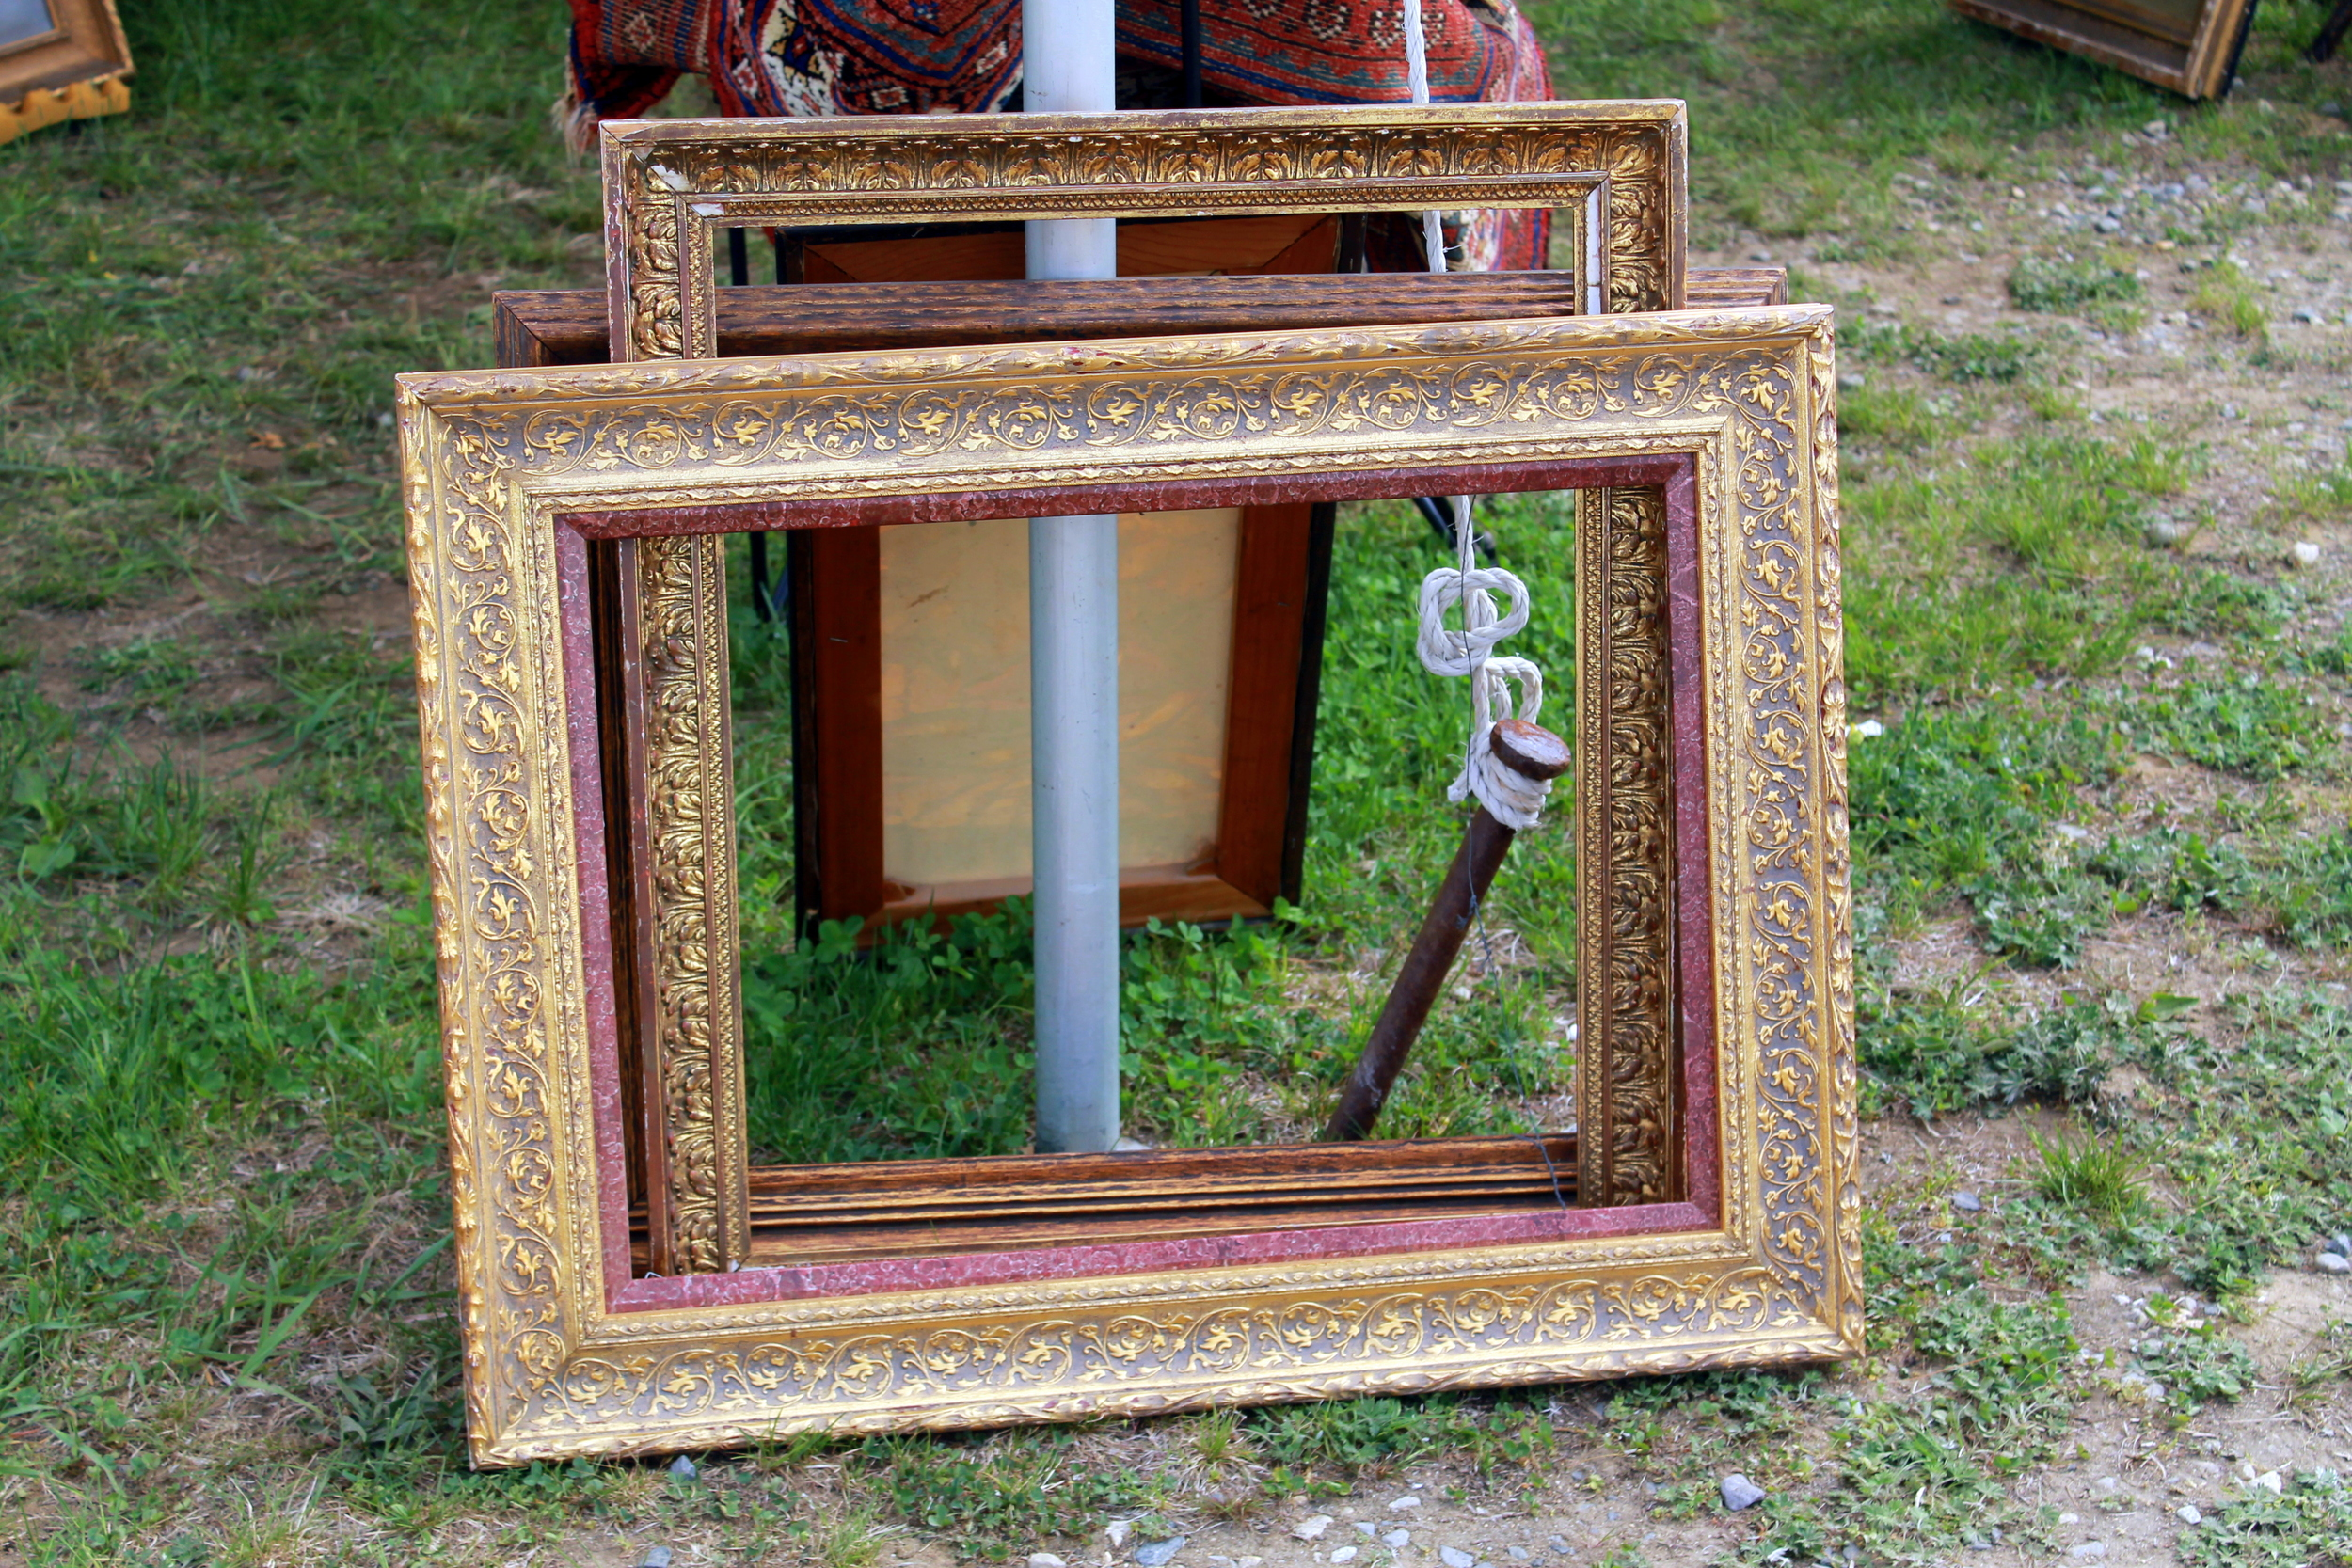 Frames can be expensive. Flea markets and antique shows are great places to acquire some at a great price. Don't worry about the imperfections - Slight imperfections can be covered up with some paint - Try black lacquer or gold.